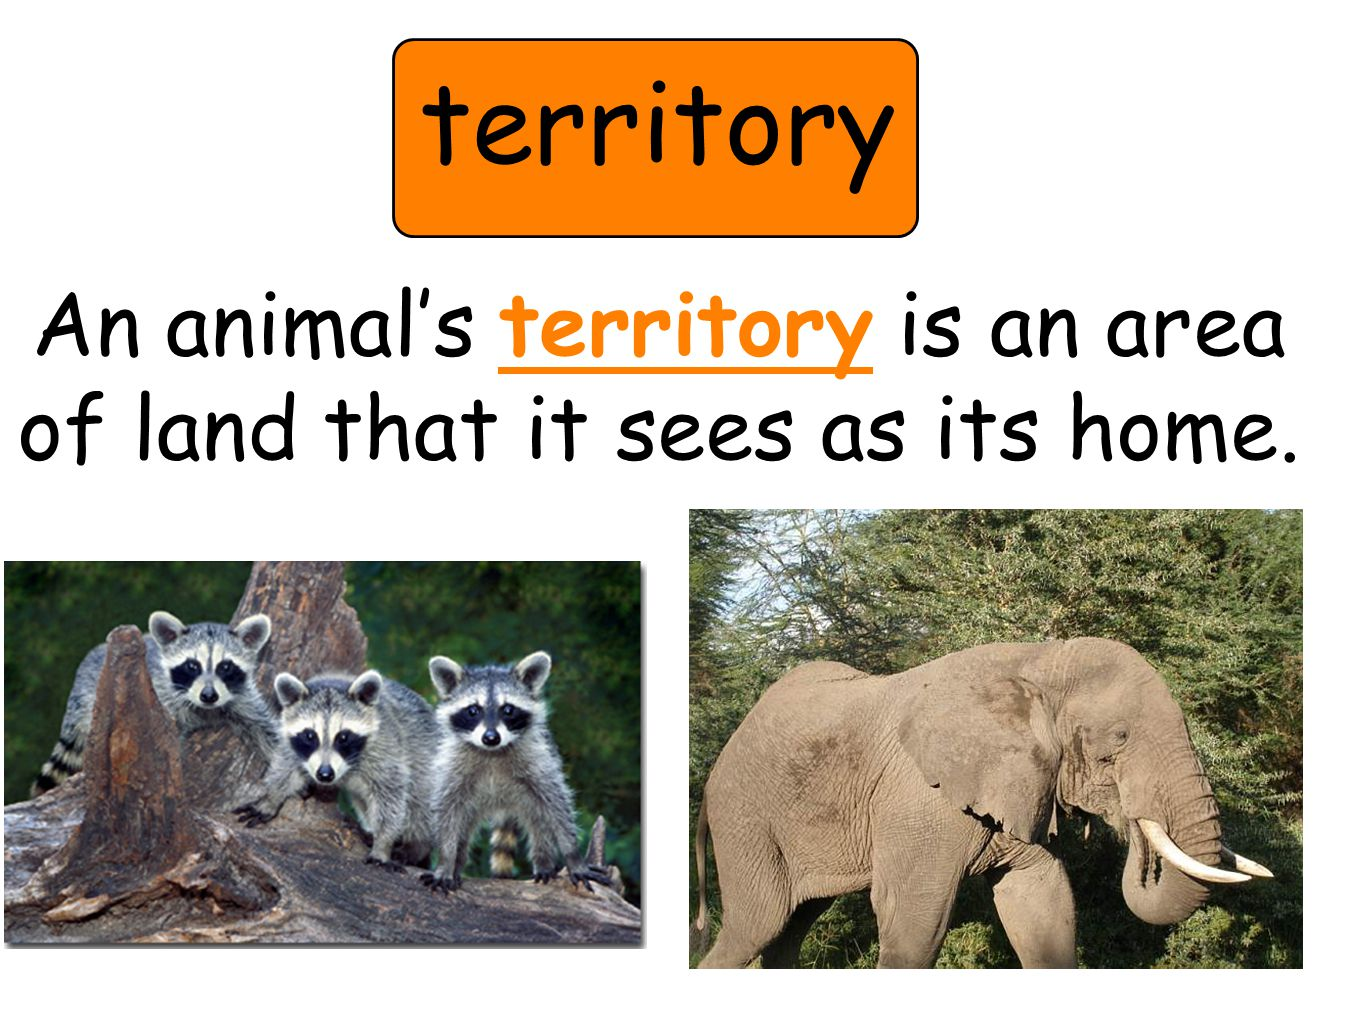 territory An animal's territory is an area of land that it sees as its home.